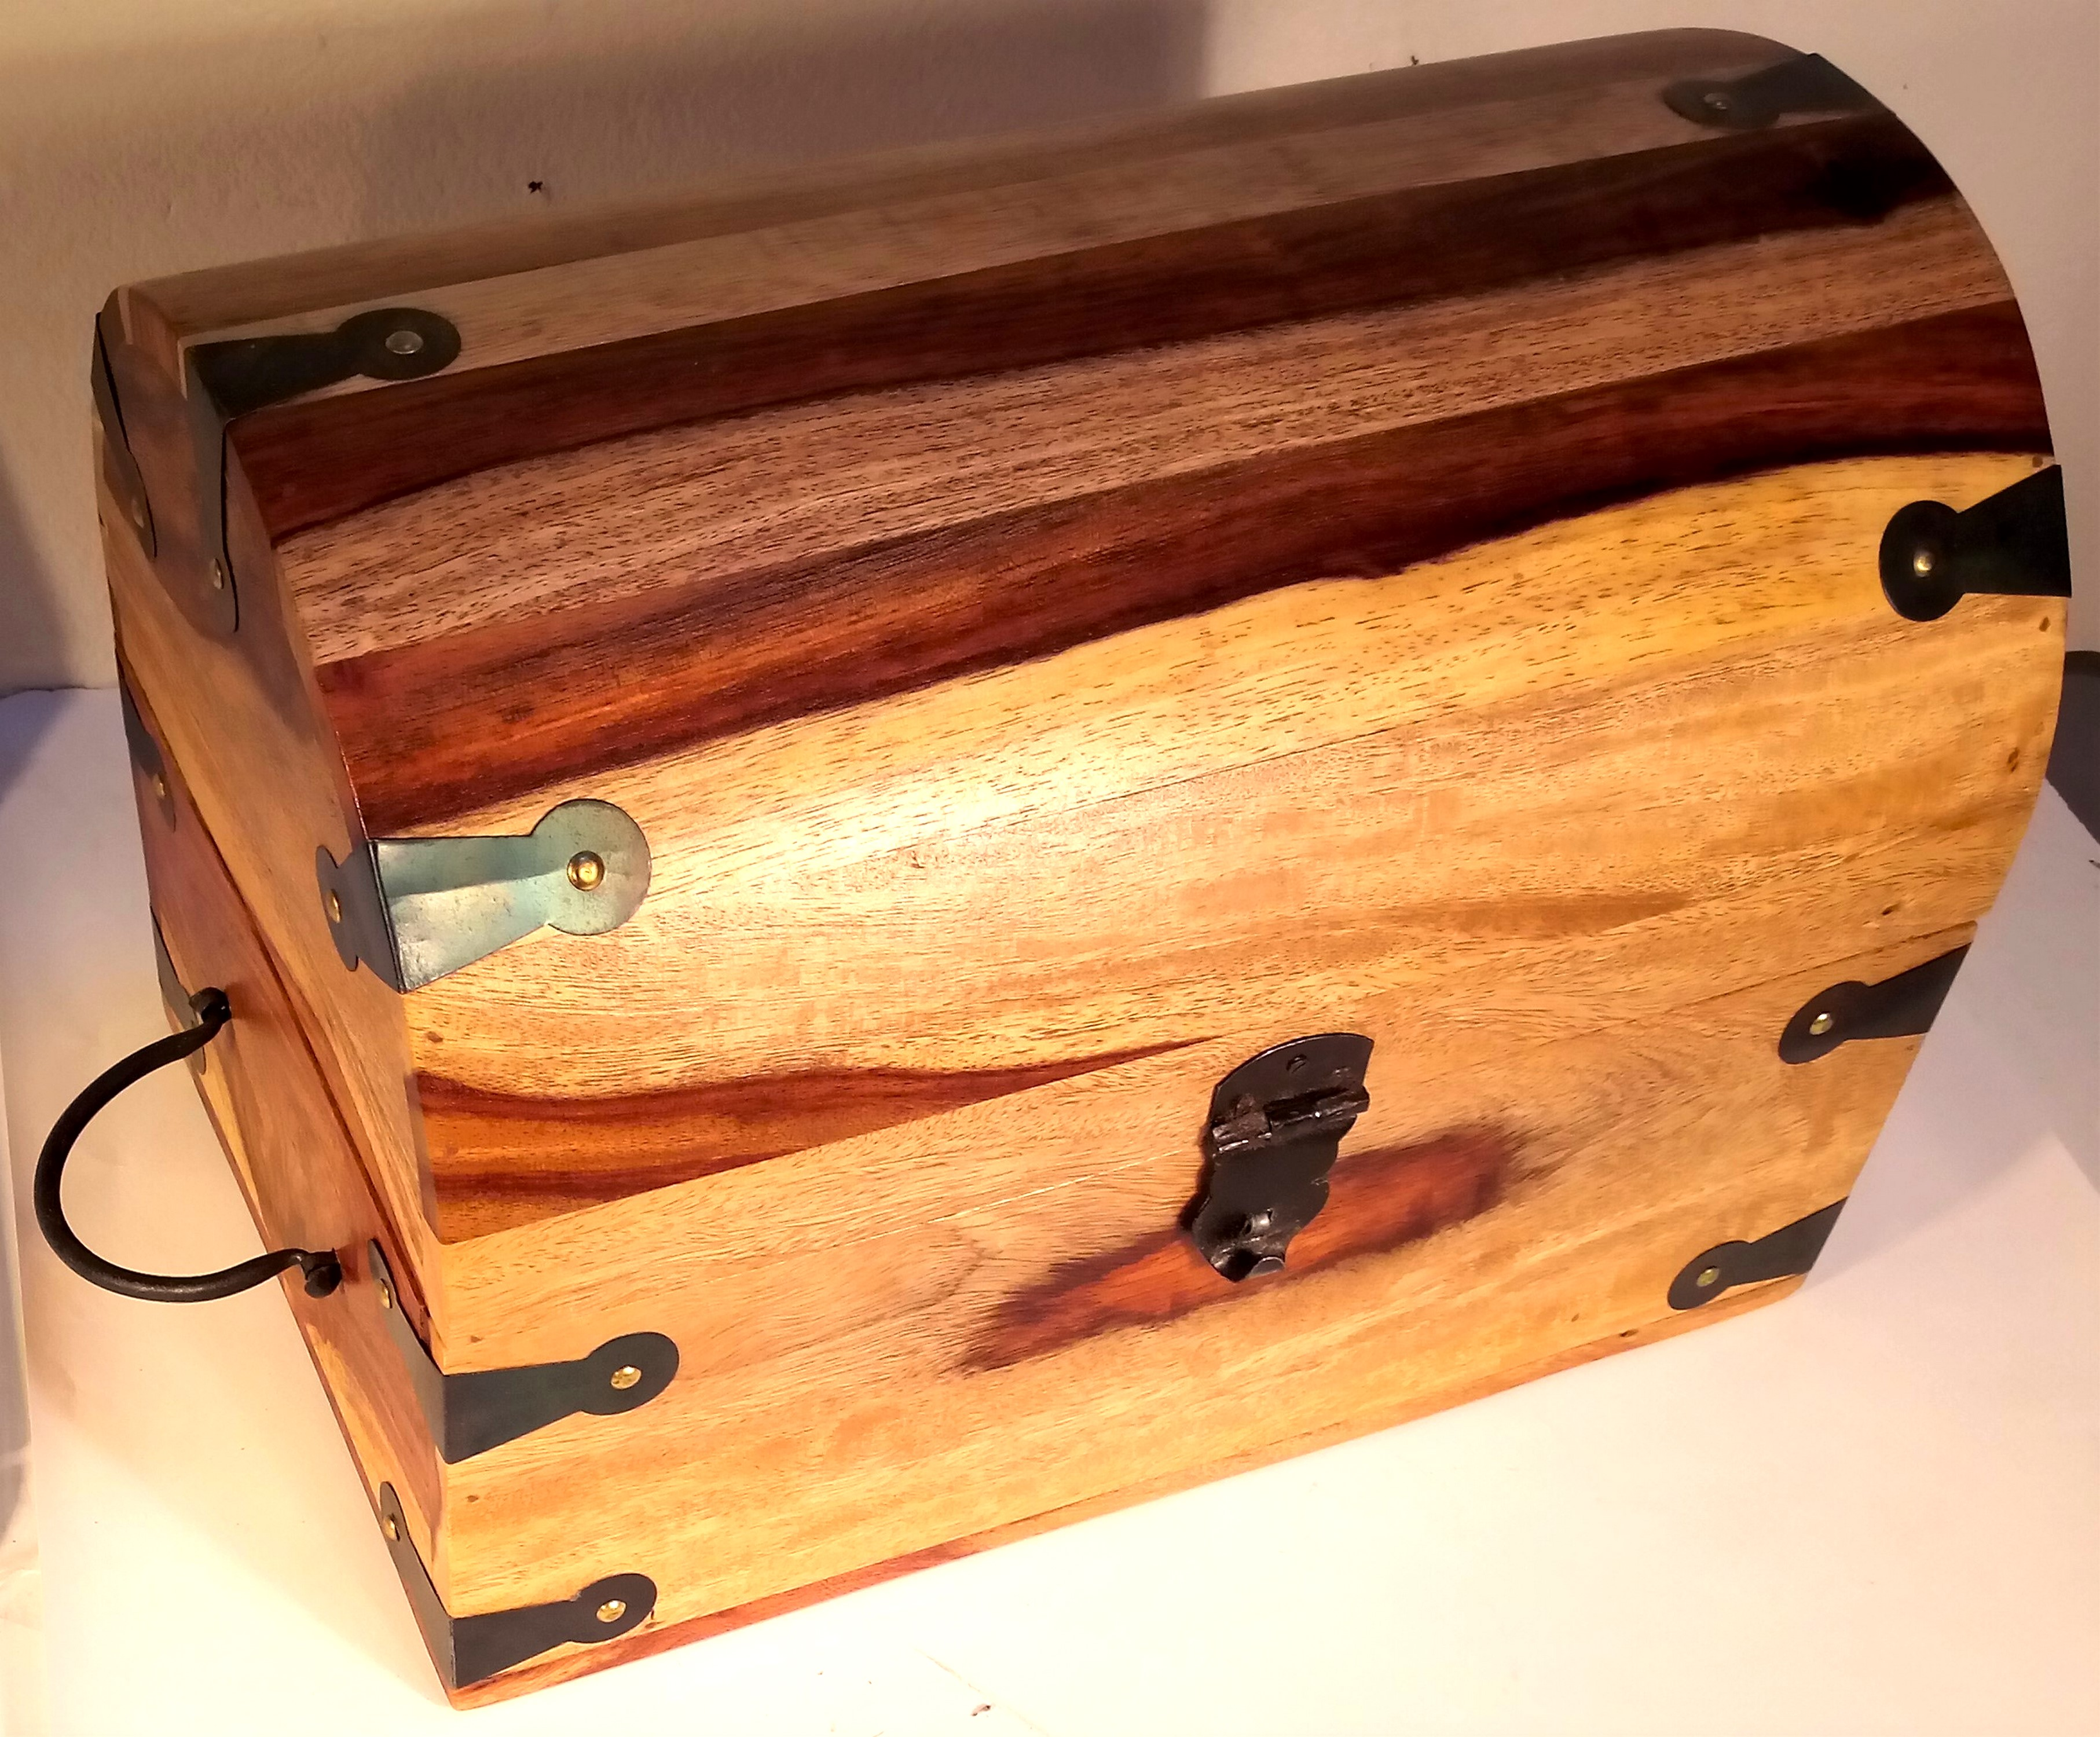 Mango wood 'Treasure Chest' banded with metal and with metal handles and clasp. 36 x 25 x 25cm. New